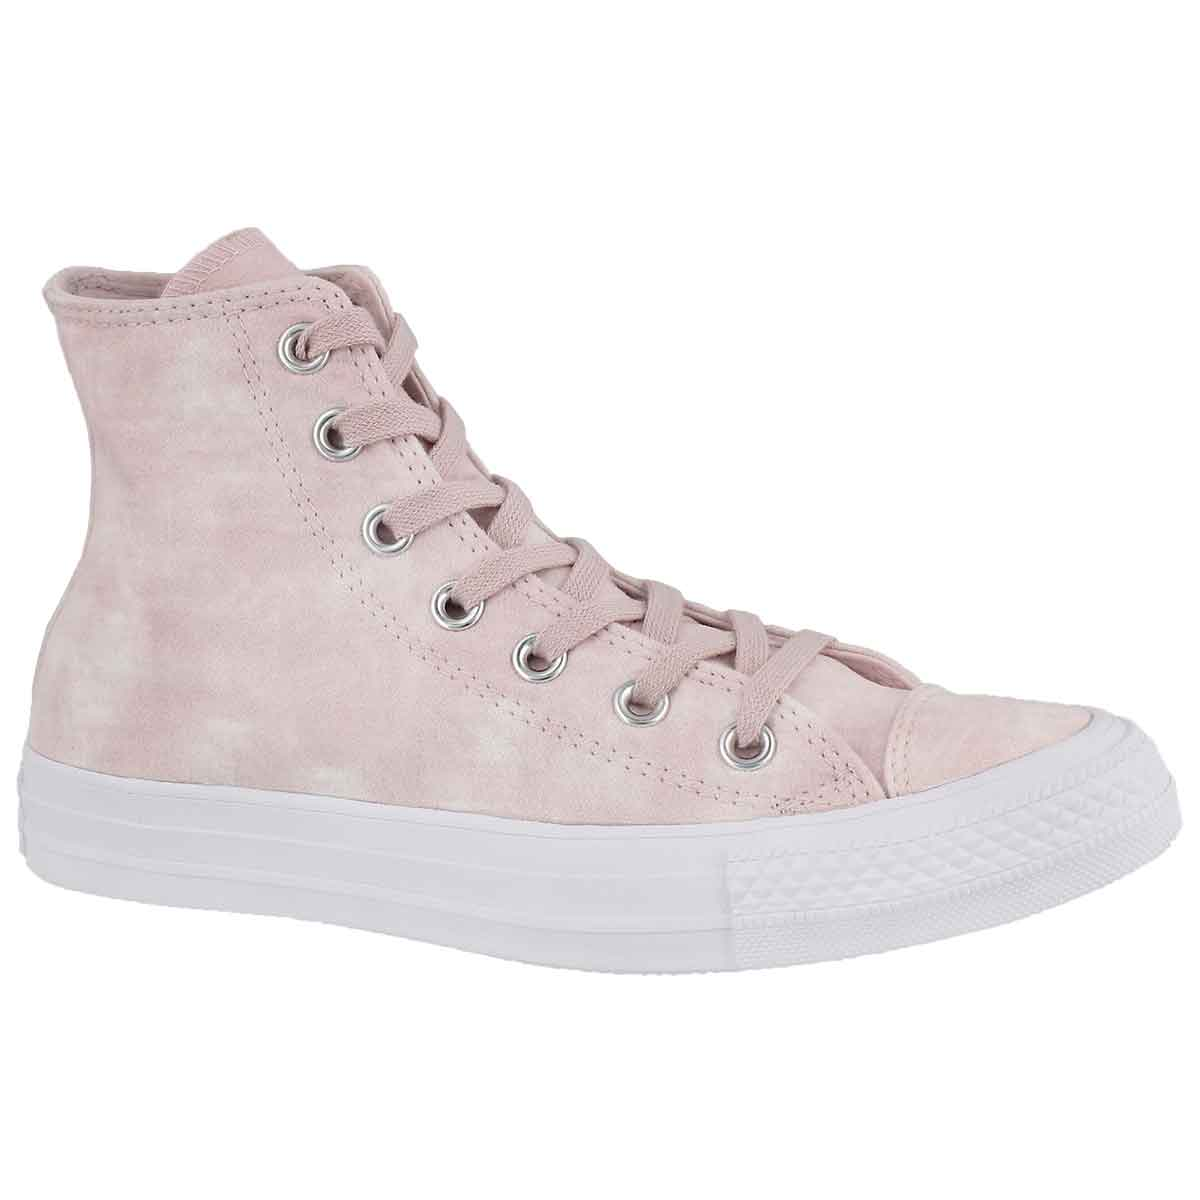 Women's CT ALL STAR PEACHED WASH coral high tops